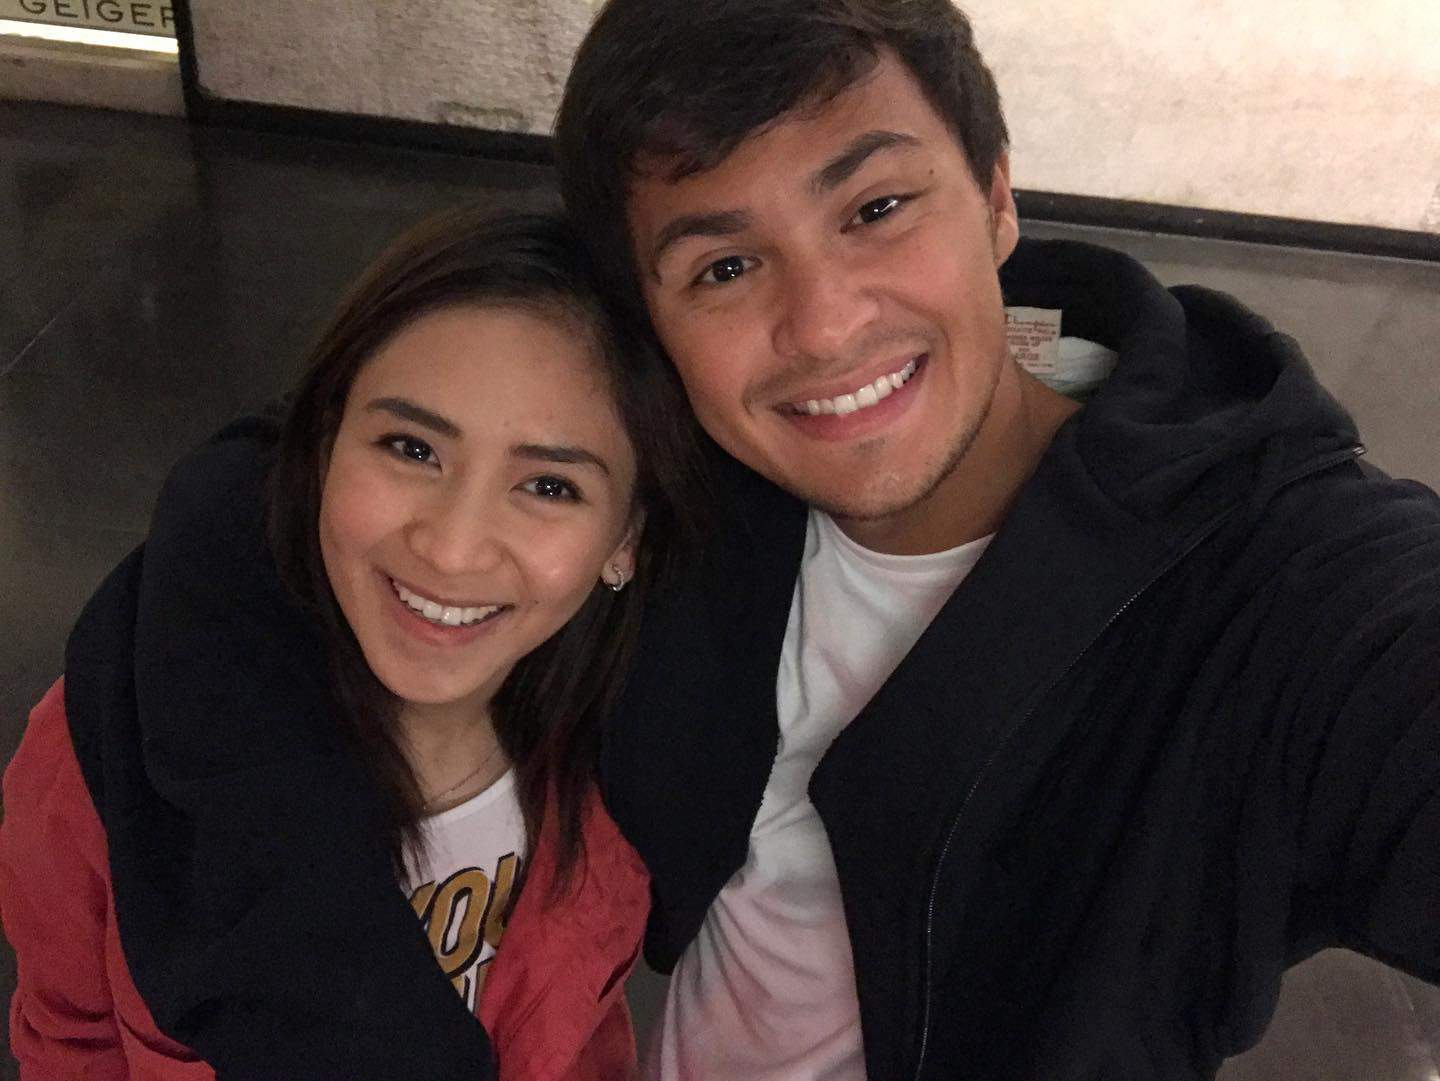 Matteo Guidicelli says he prayed for Sarah Geronimo to be his wife